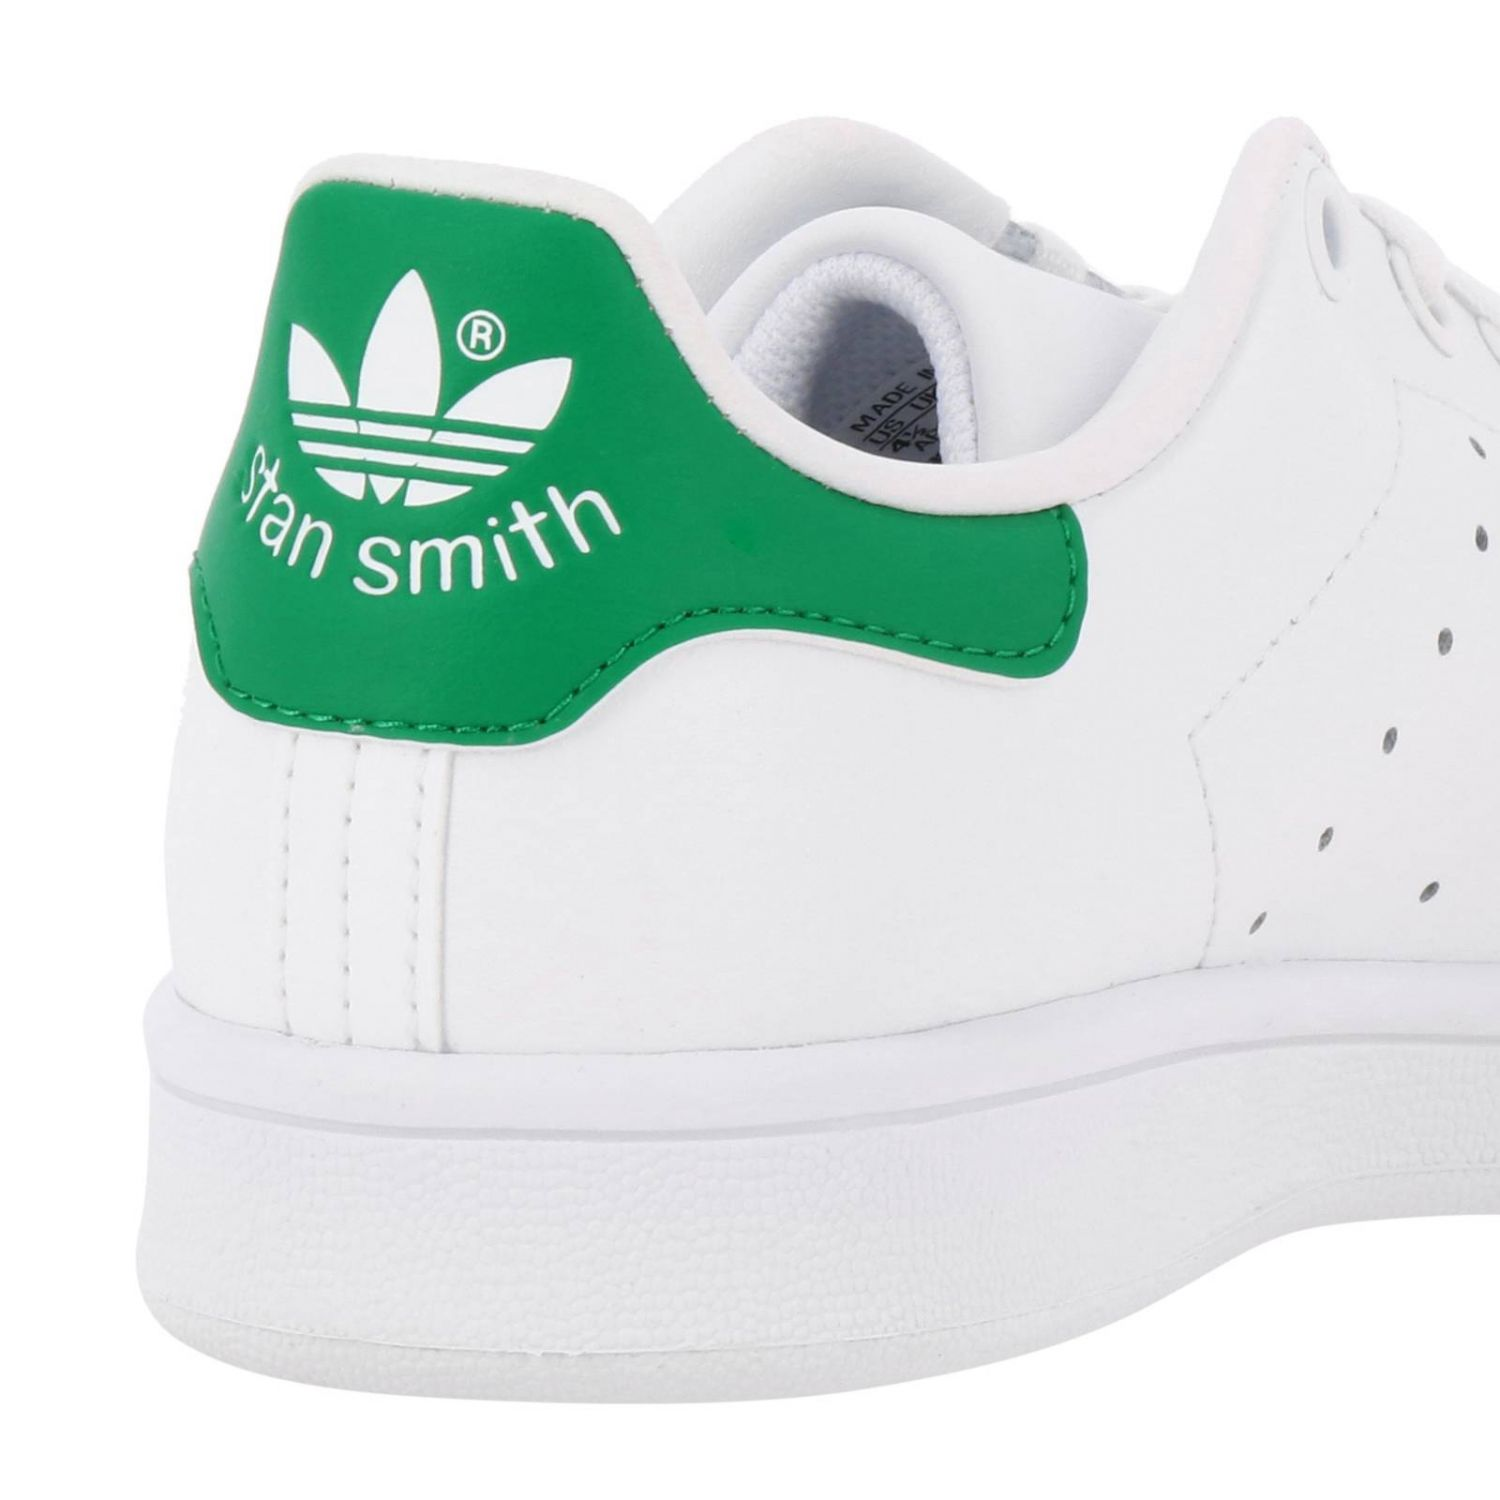 Shoes Adidas Originals: Stan Smith J Adidas Originals Sneakers in smooth leather white 4